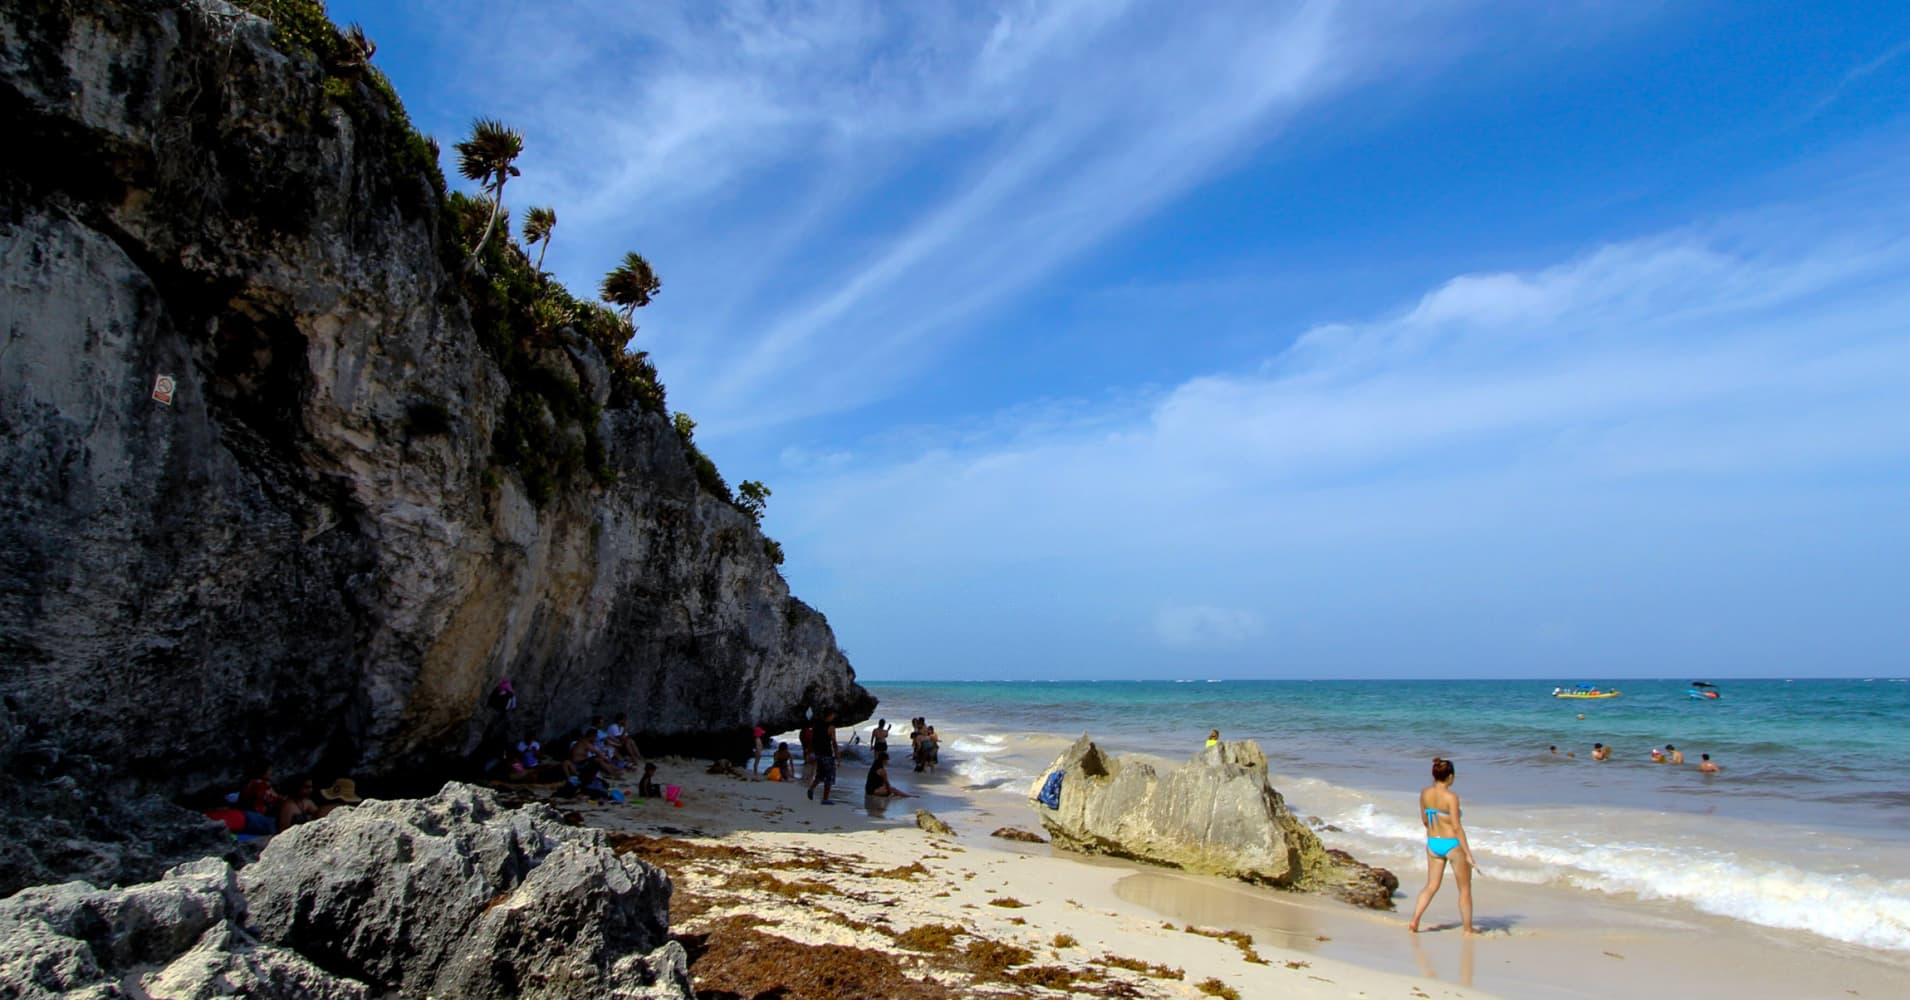 Is Mexico safe? Where to travel now